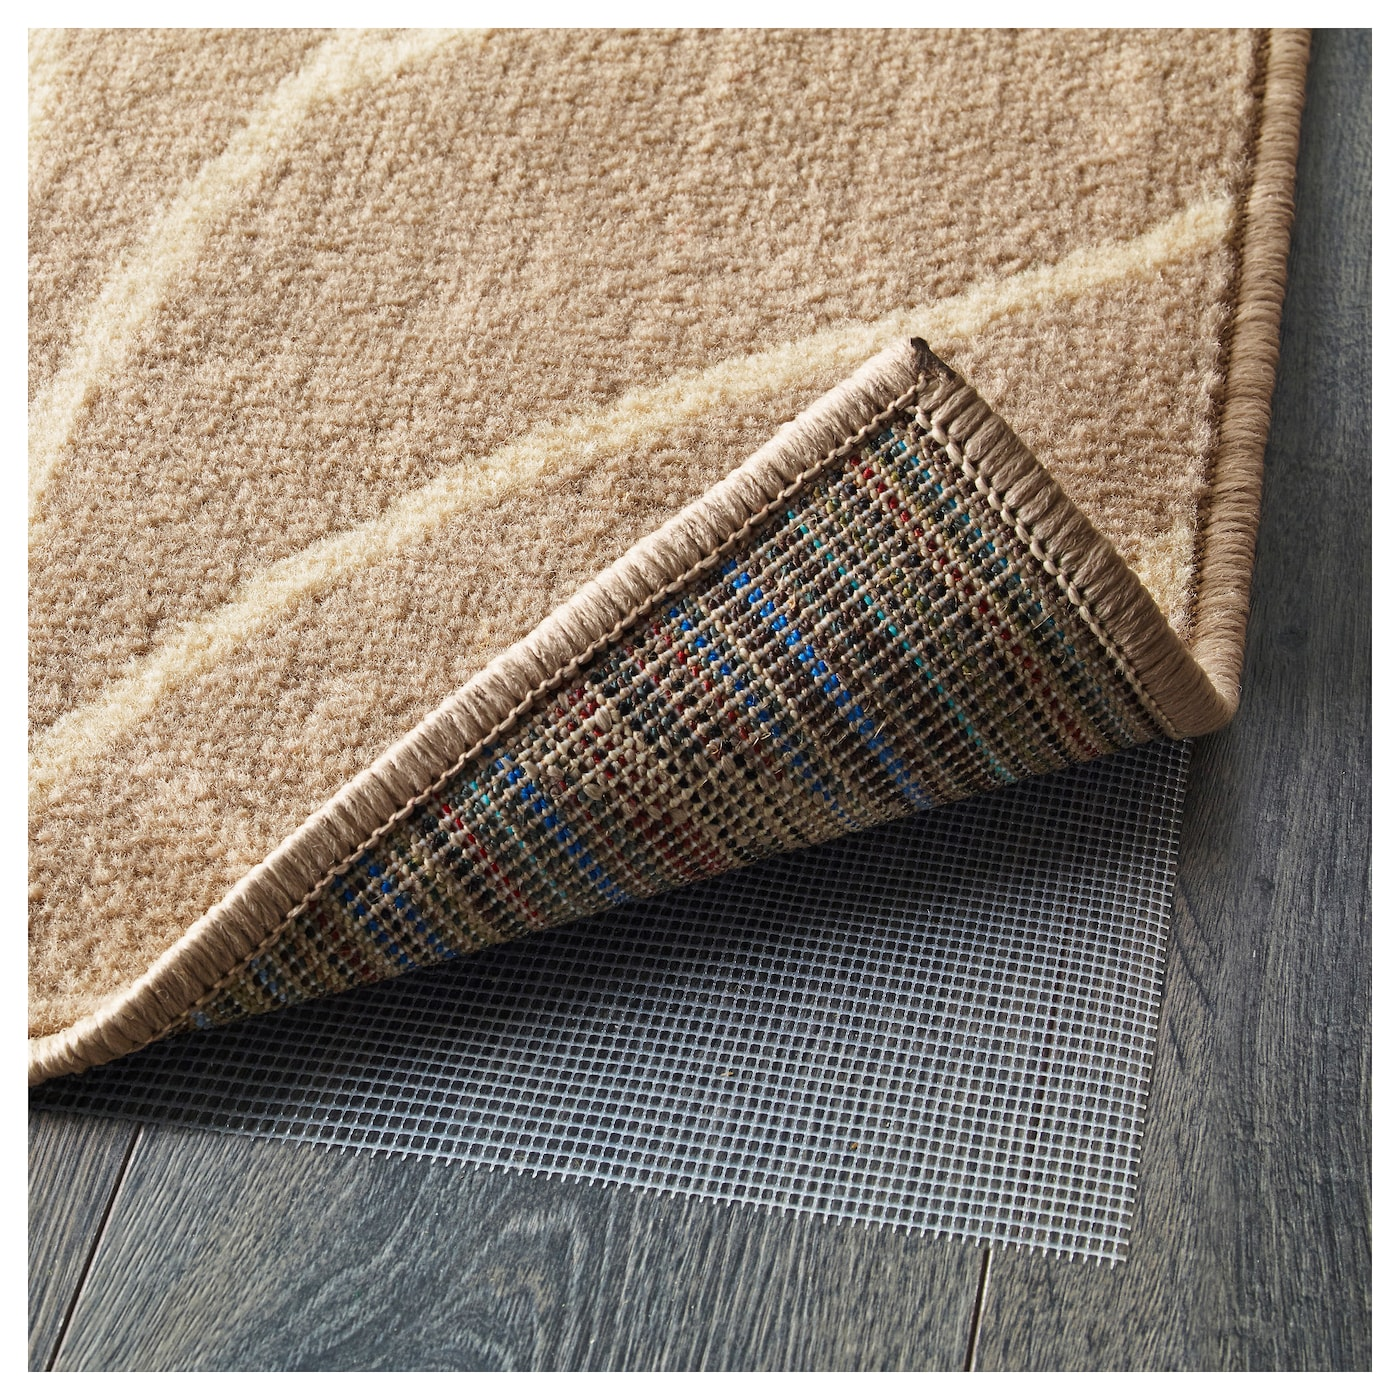 IKEA LÄBORG rug, low pile The thick pile dampens sound and provides a soft surface to walk on.